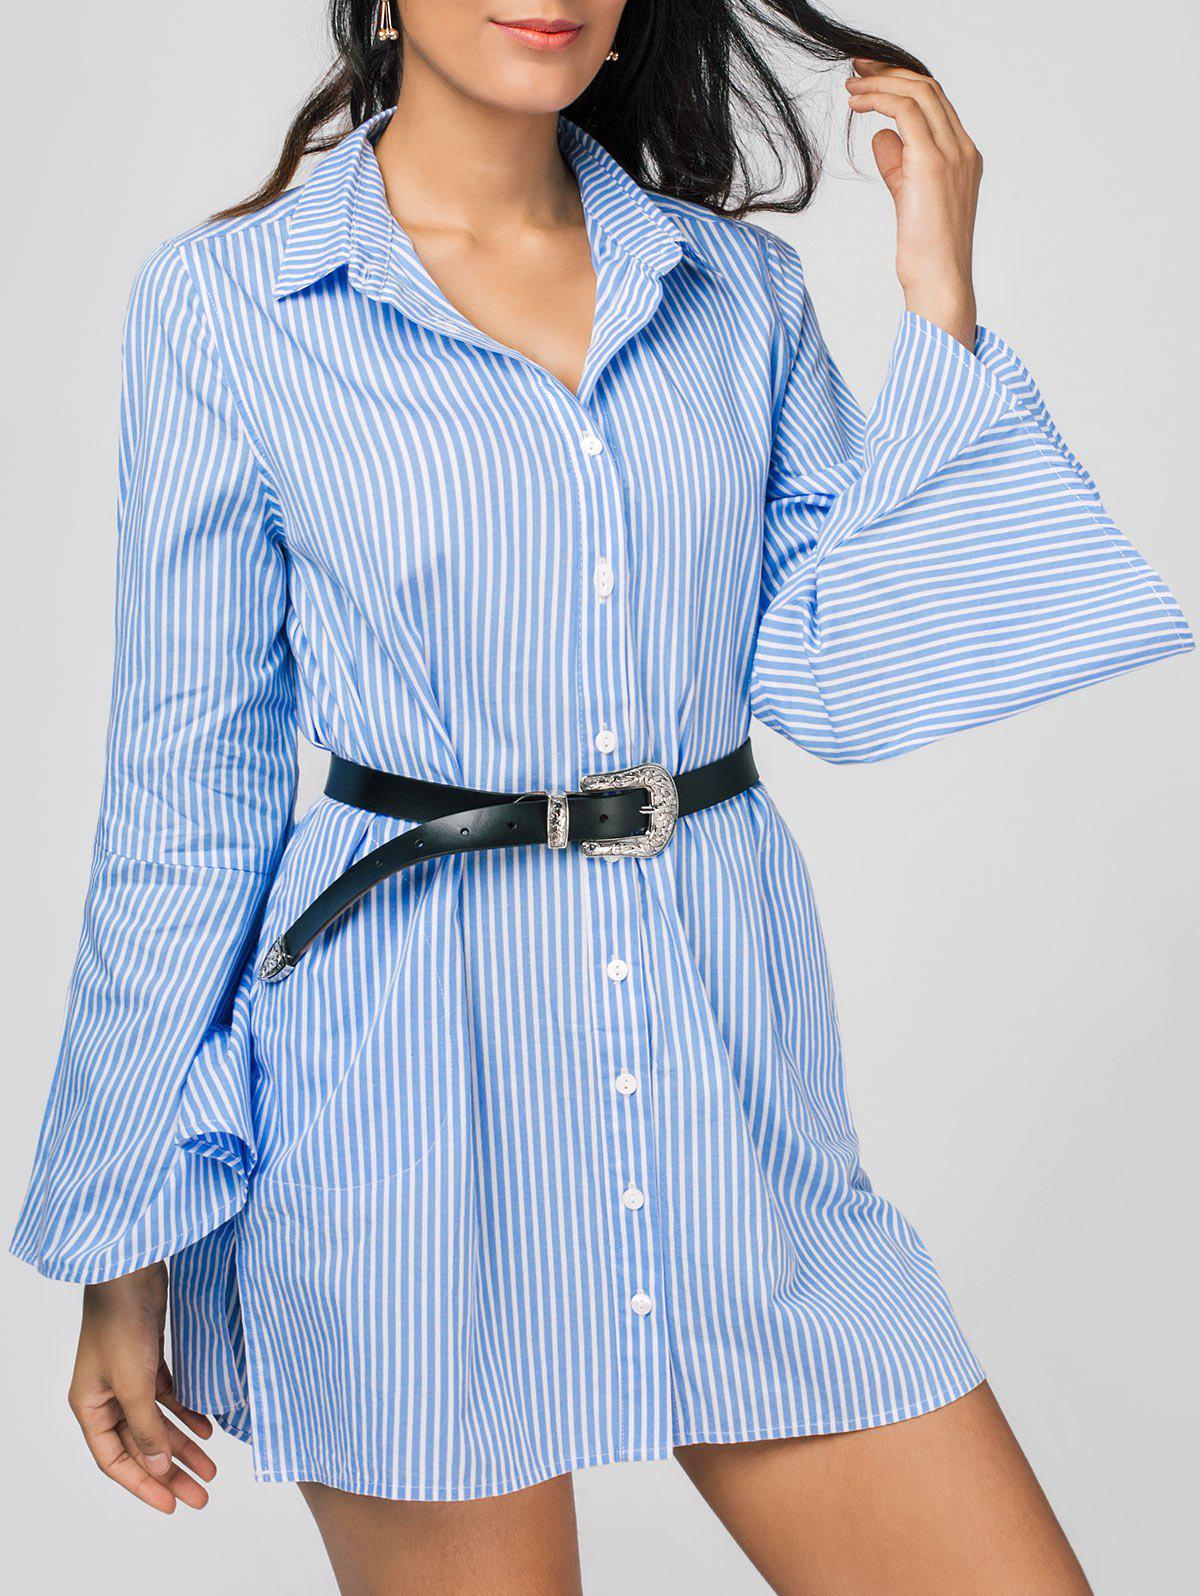 Unique Stripes Long Sleeve Tunic Blouse Shirt Dress